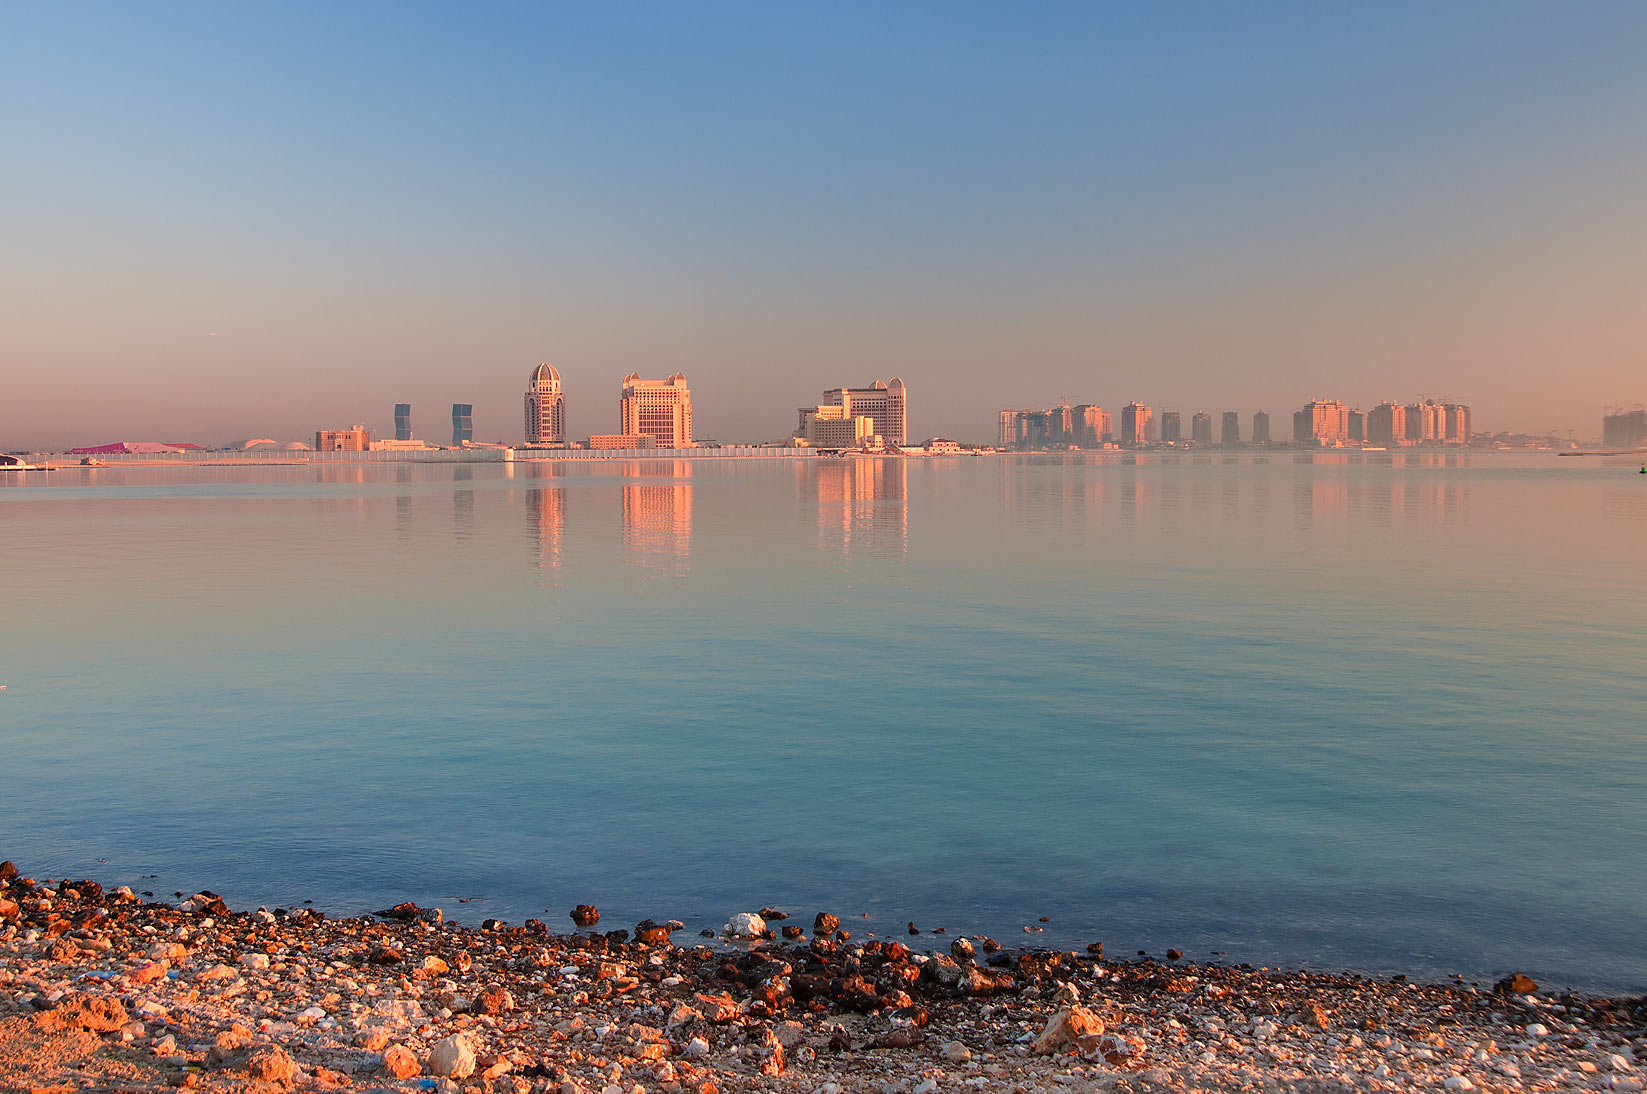 InterContinental Hotel and the Pearl Development...near Asas Twin Towers. Doha, Qatar